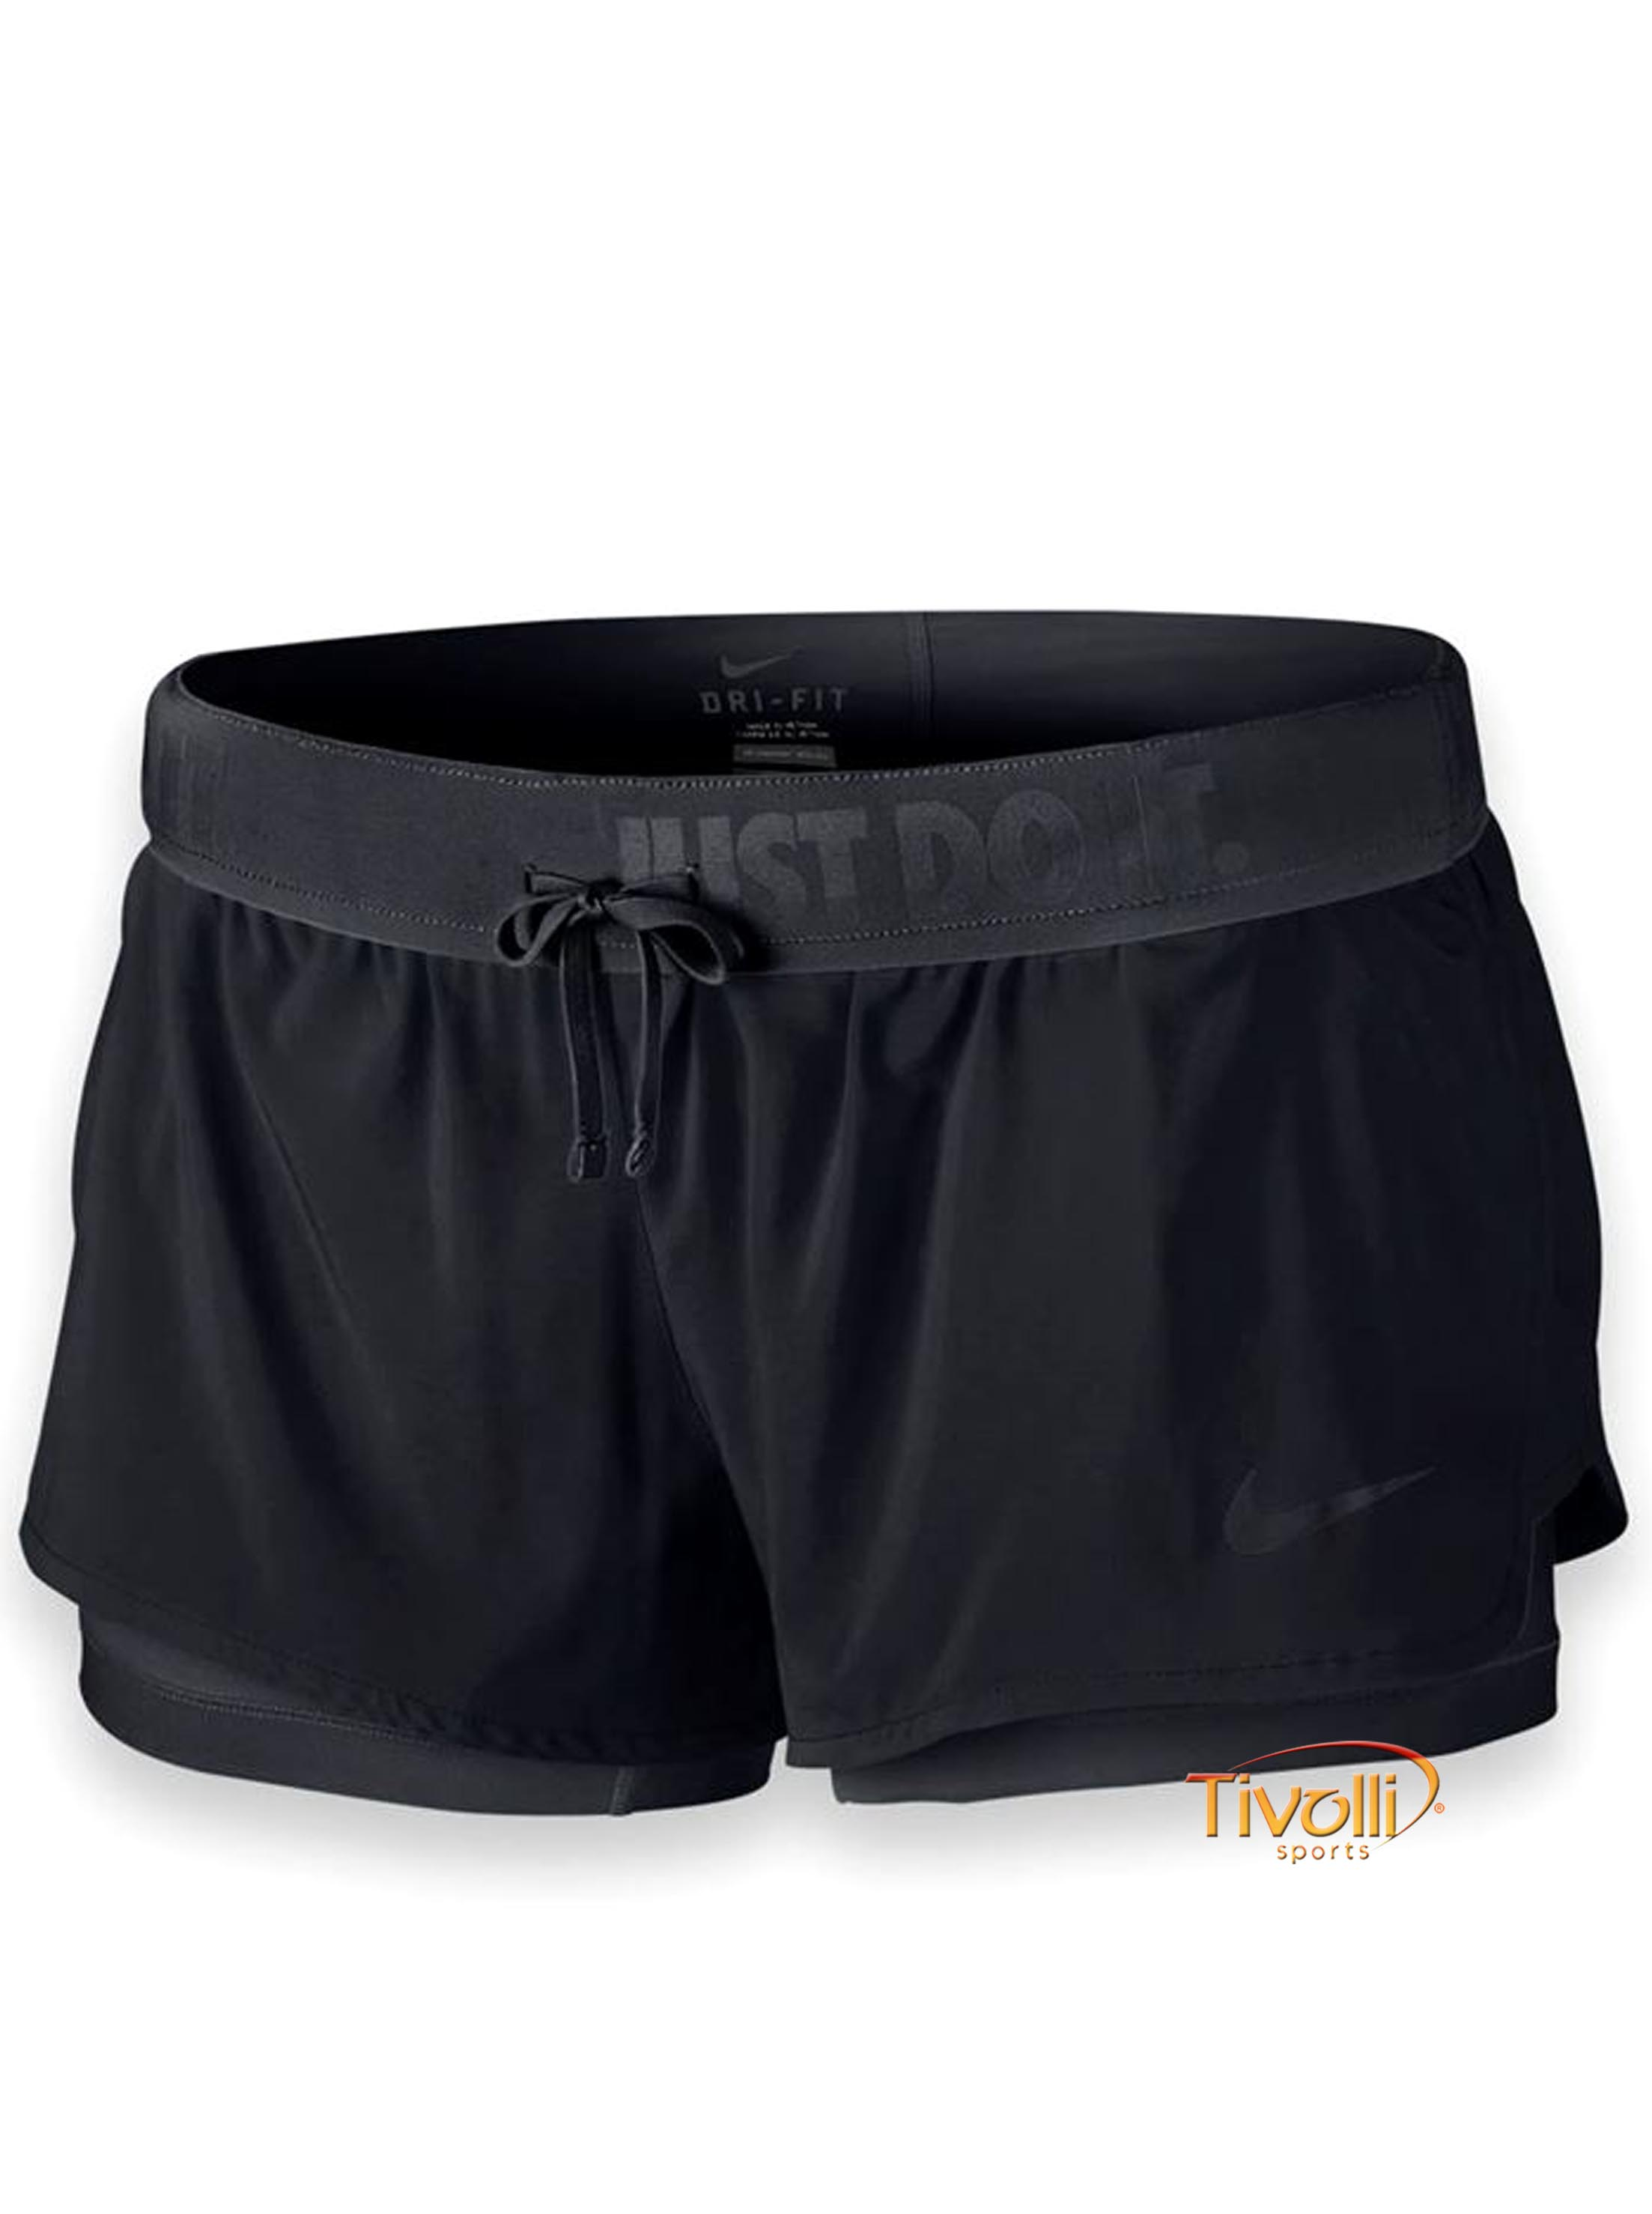 Shorts Nike Full Flex 2 In 1 com Bolsos